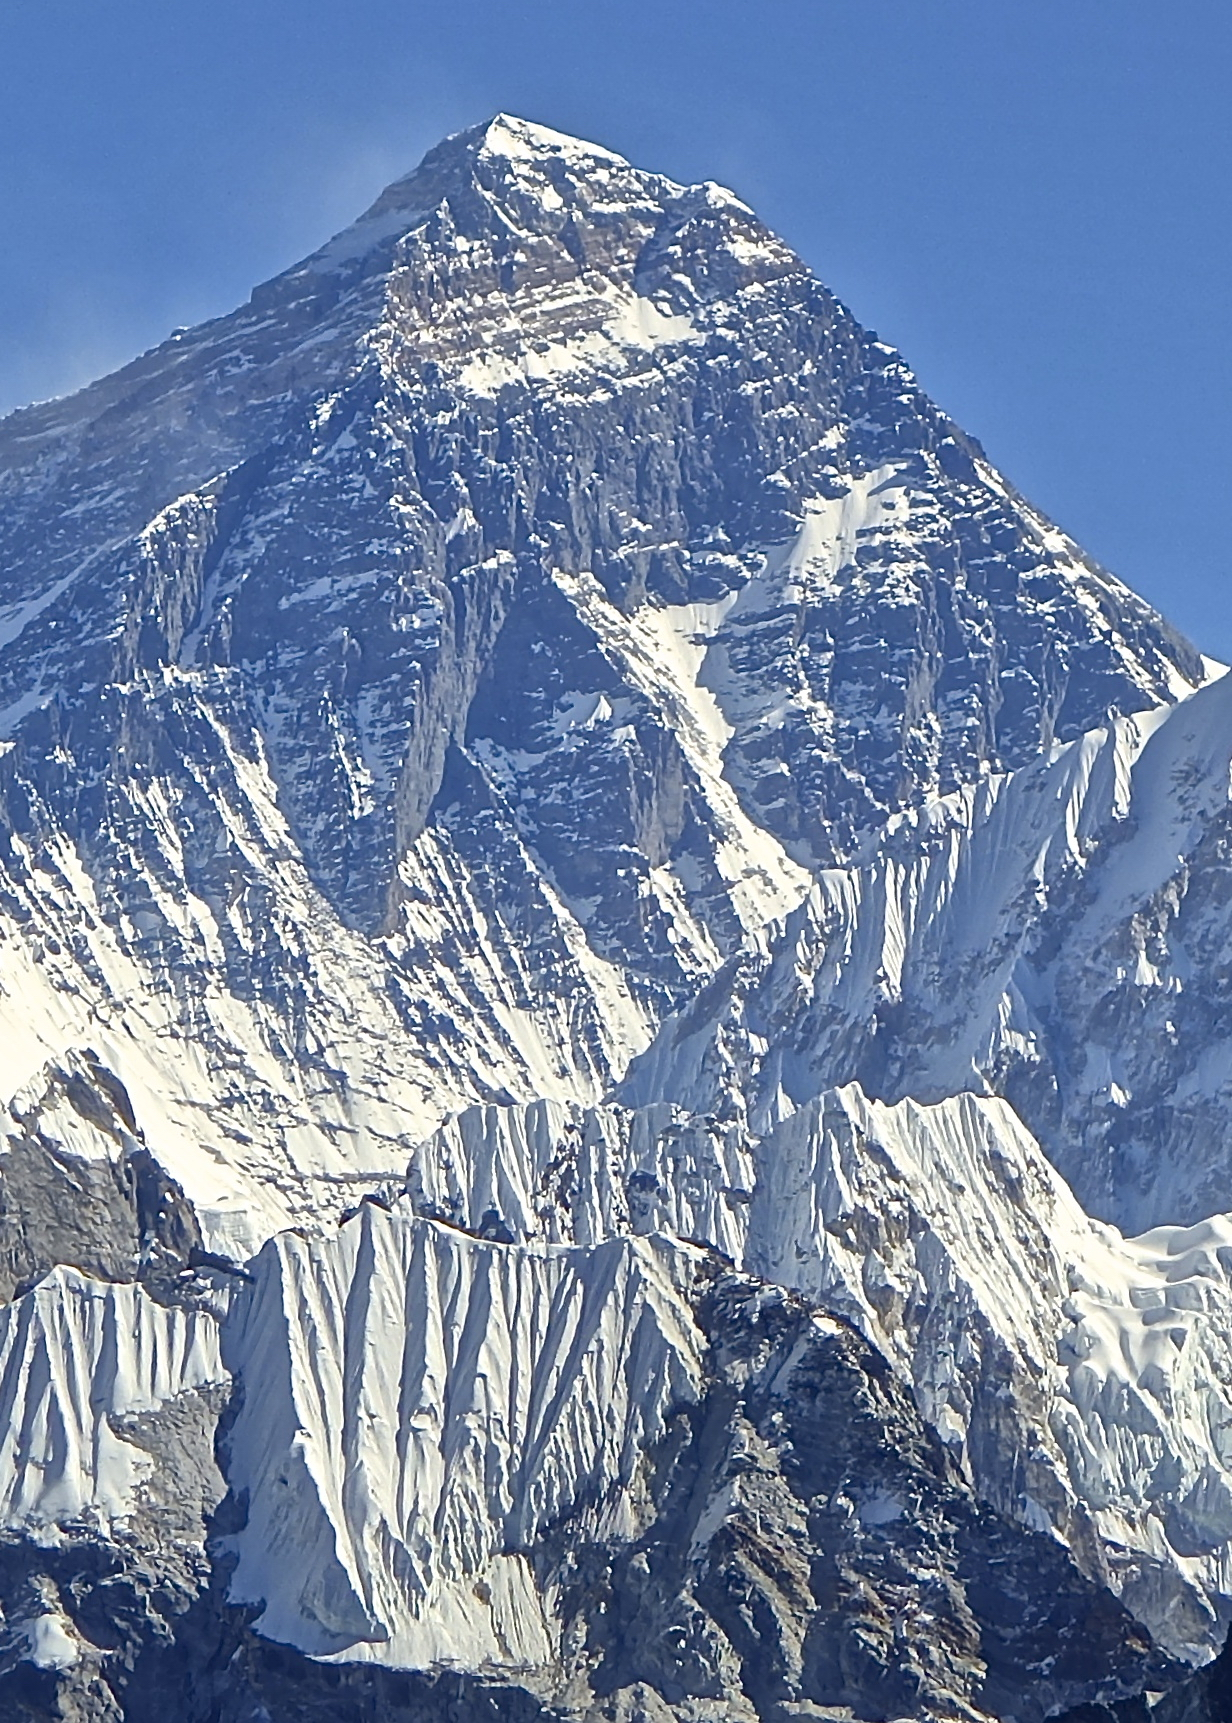 Mount_Everest_Southwest_Face,_November_2012